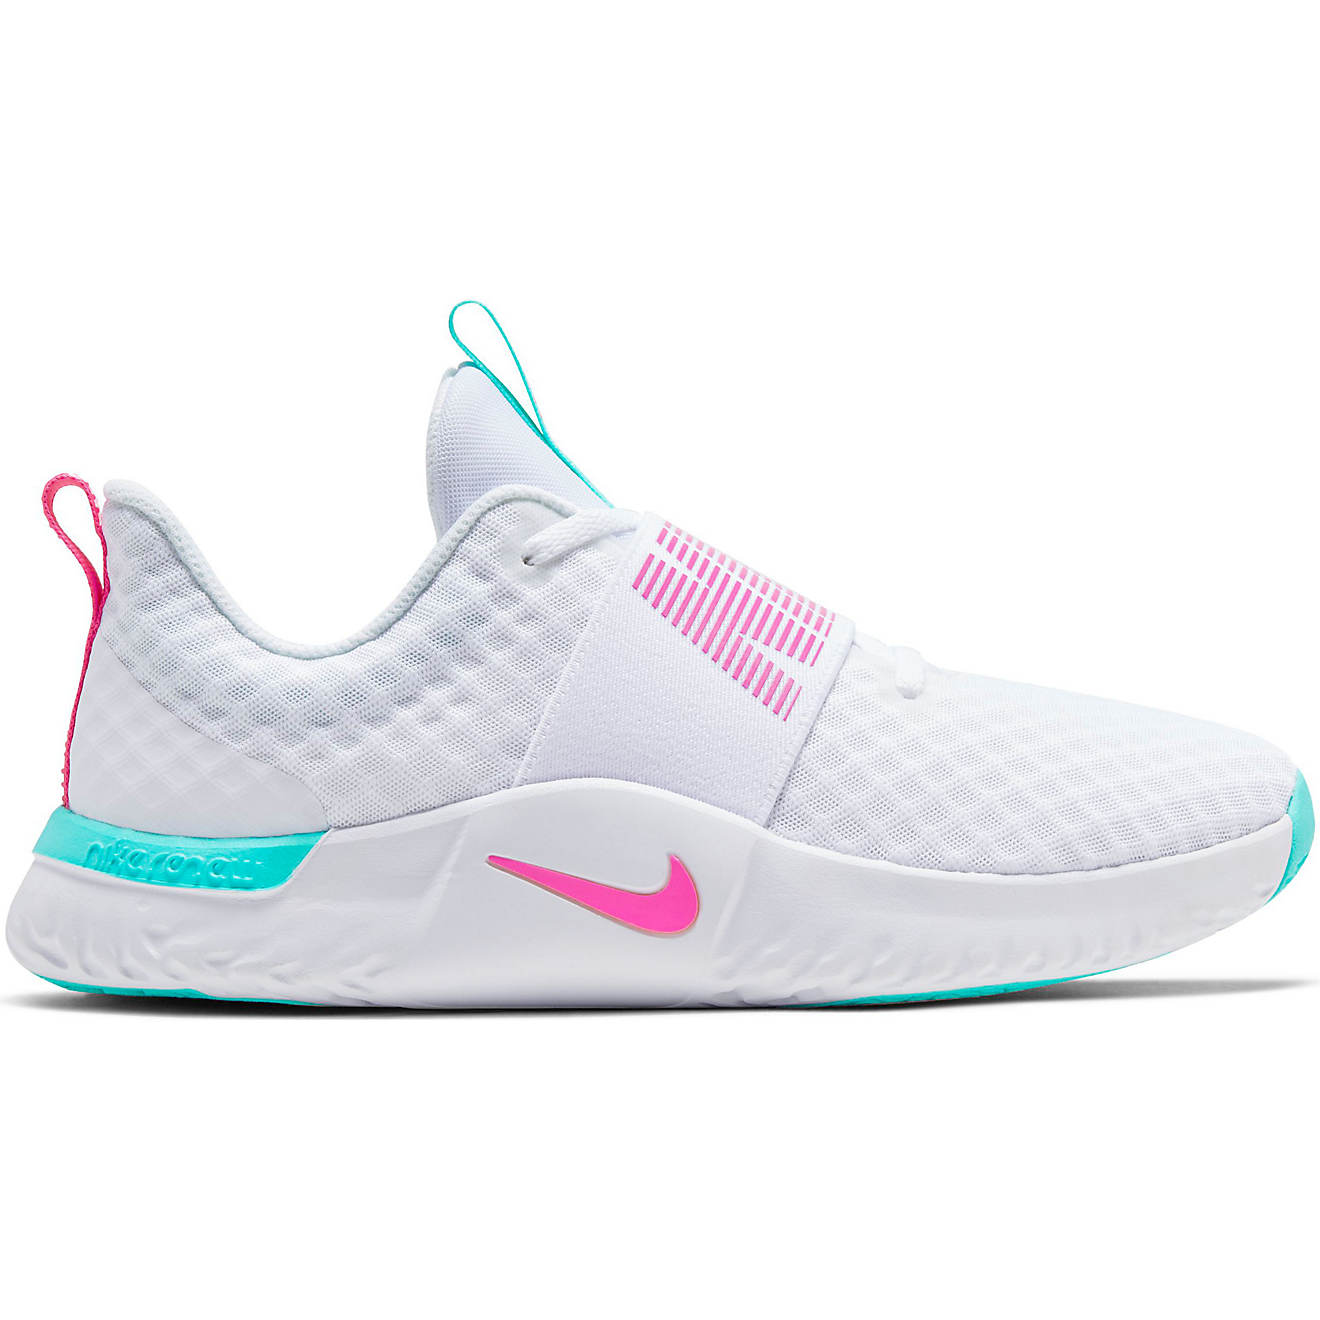 .99 Nike Women's In-Season 9 Training Shoes At Academy!